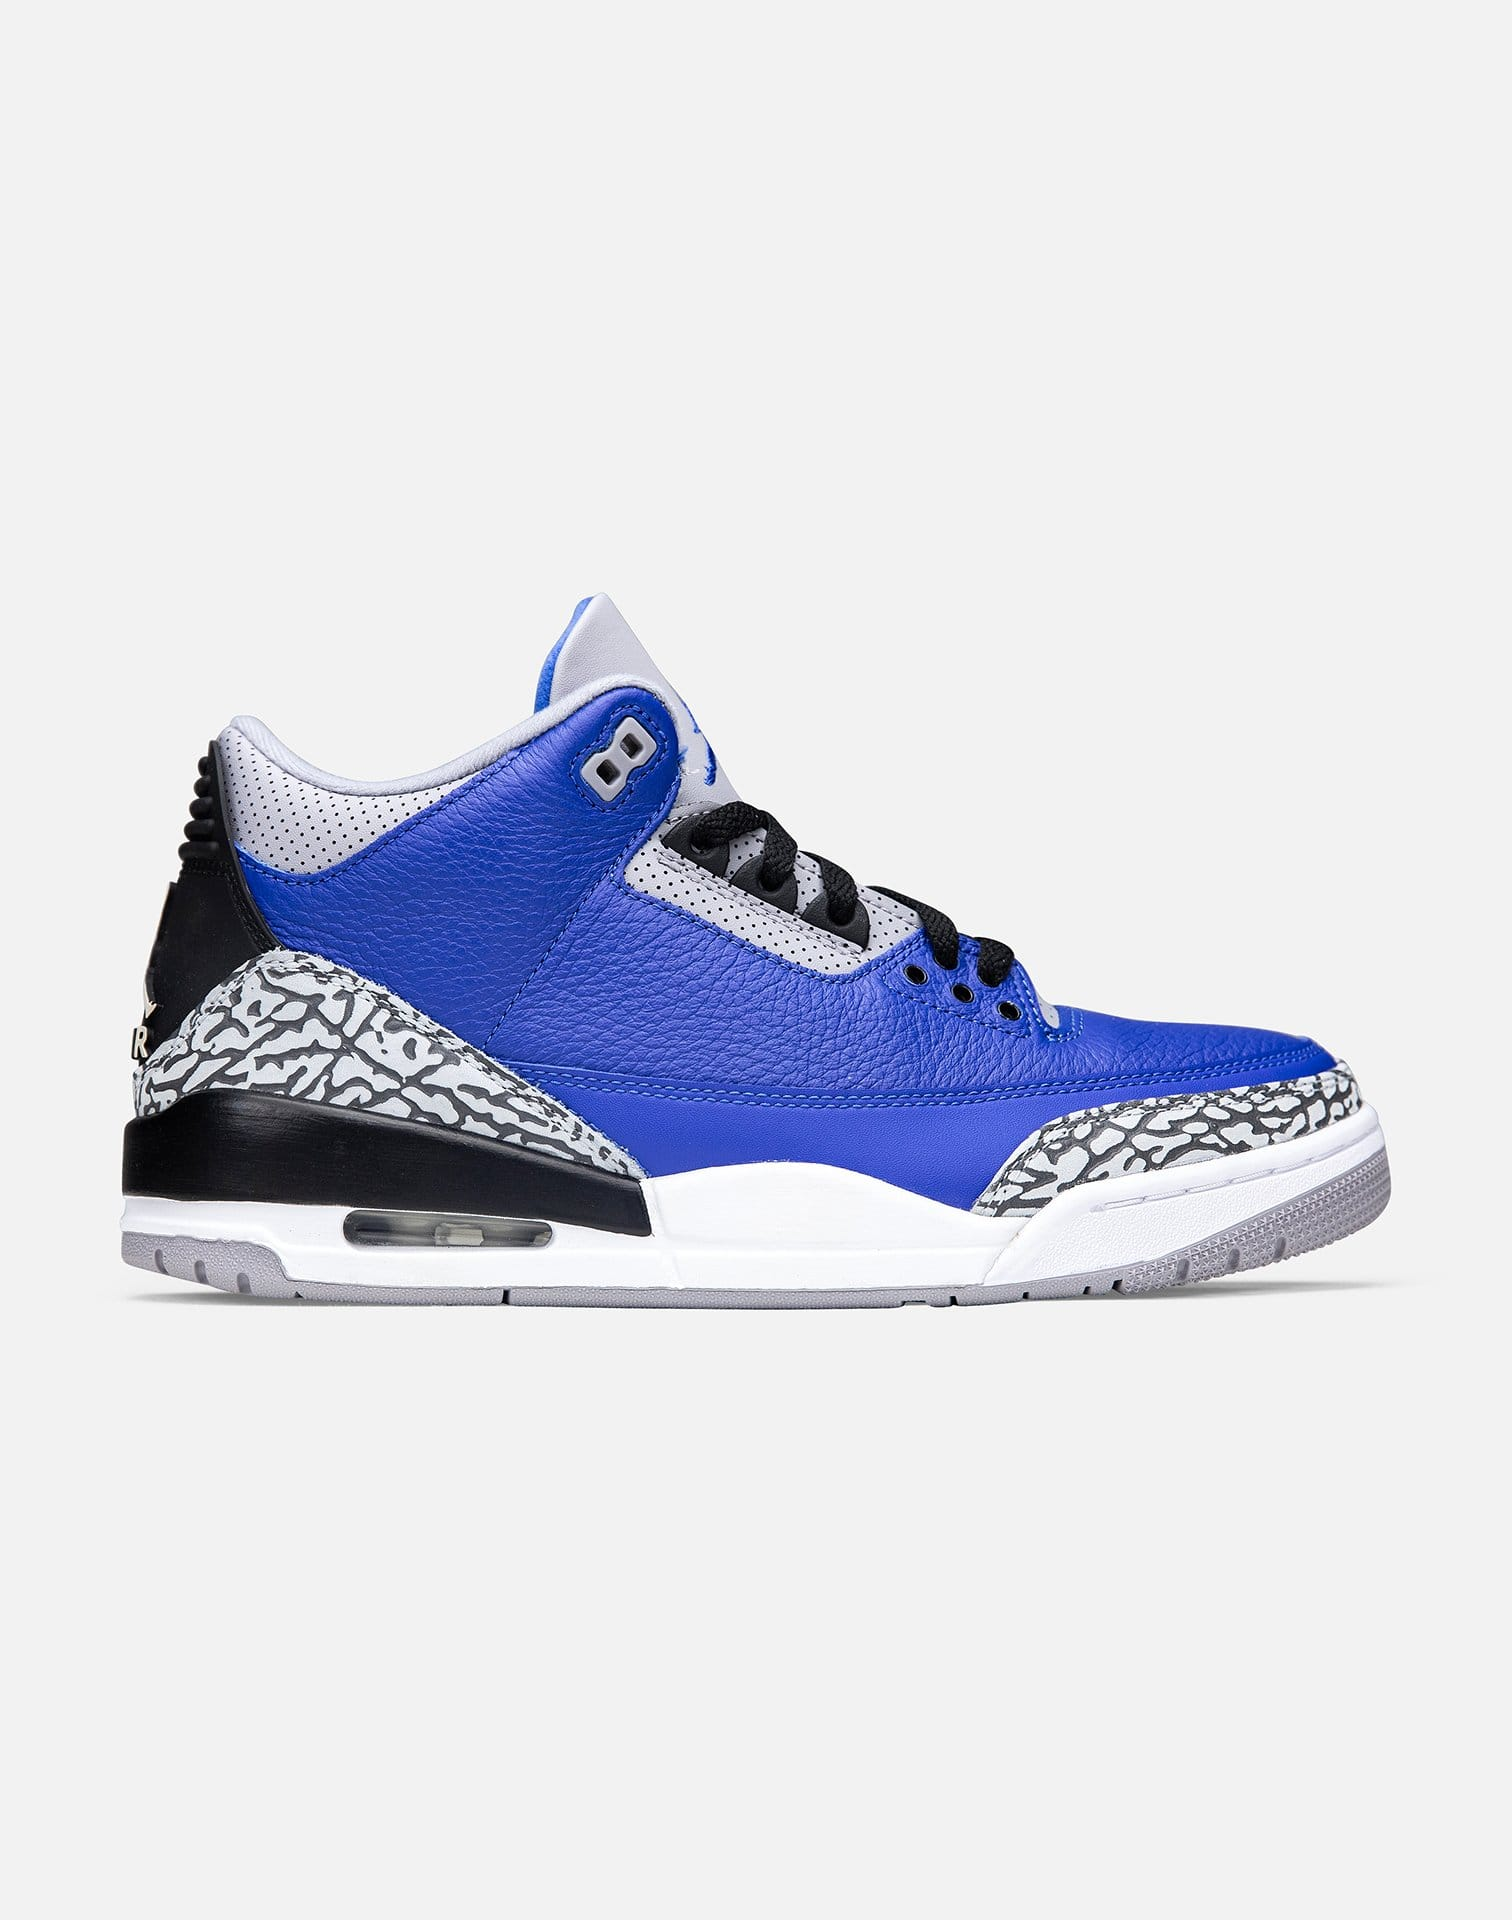 Jordan AIR JORDAN RETRO 3 'ROYAL CEMENT'